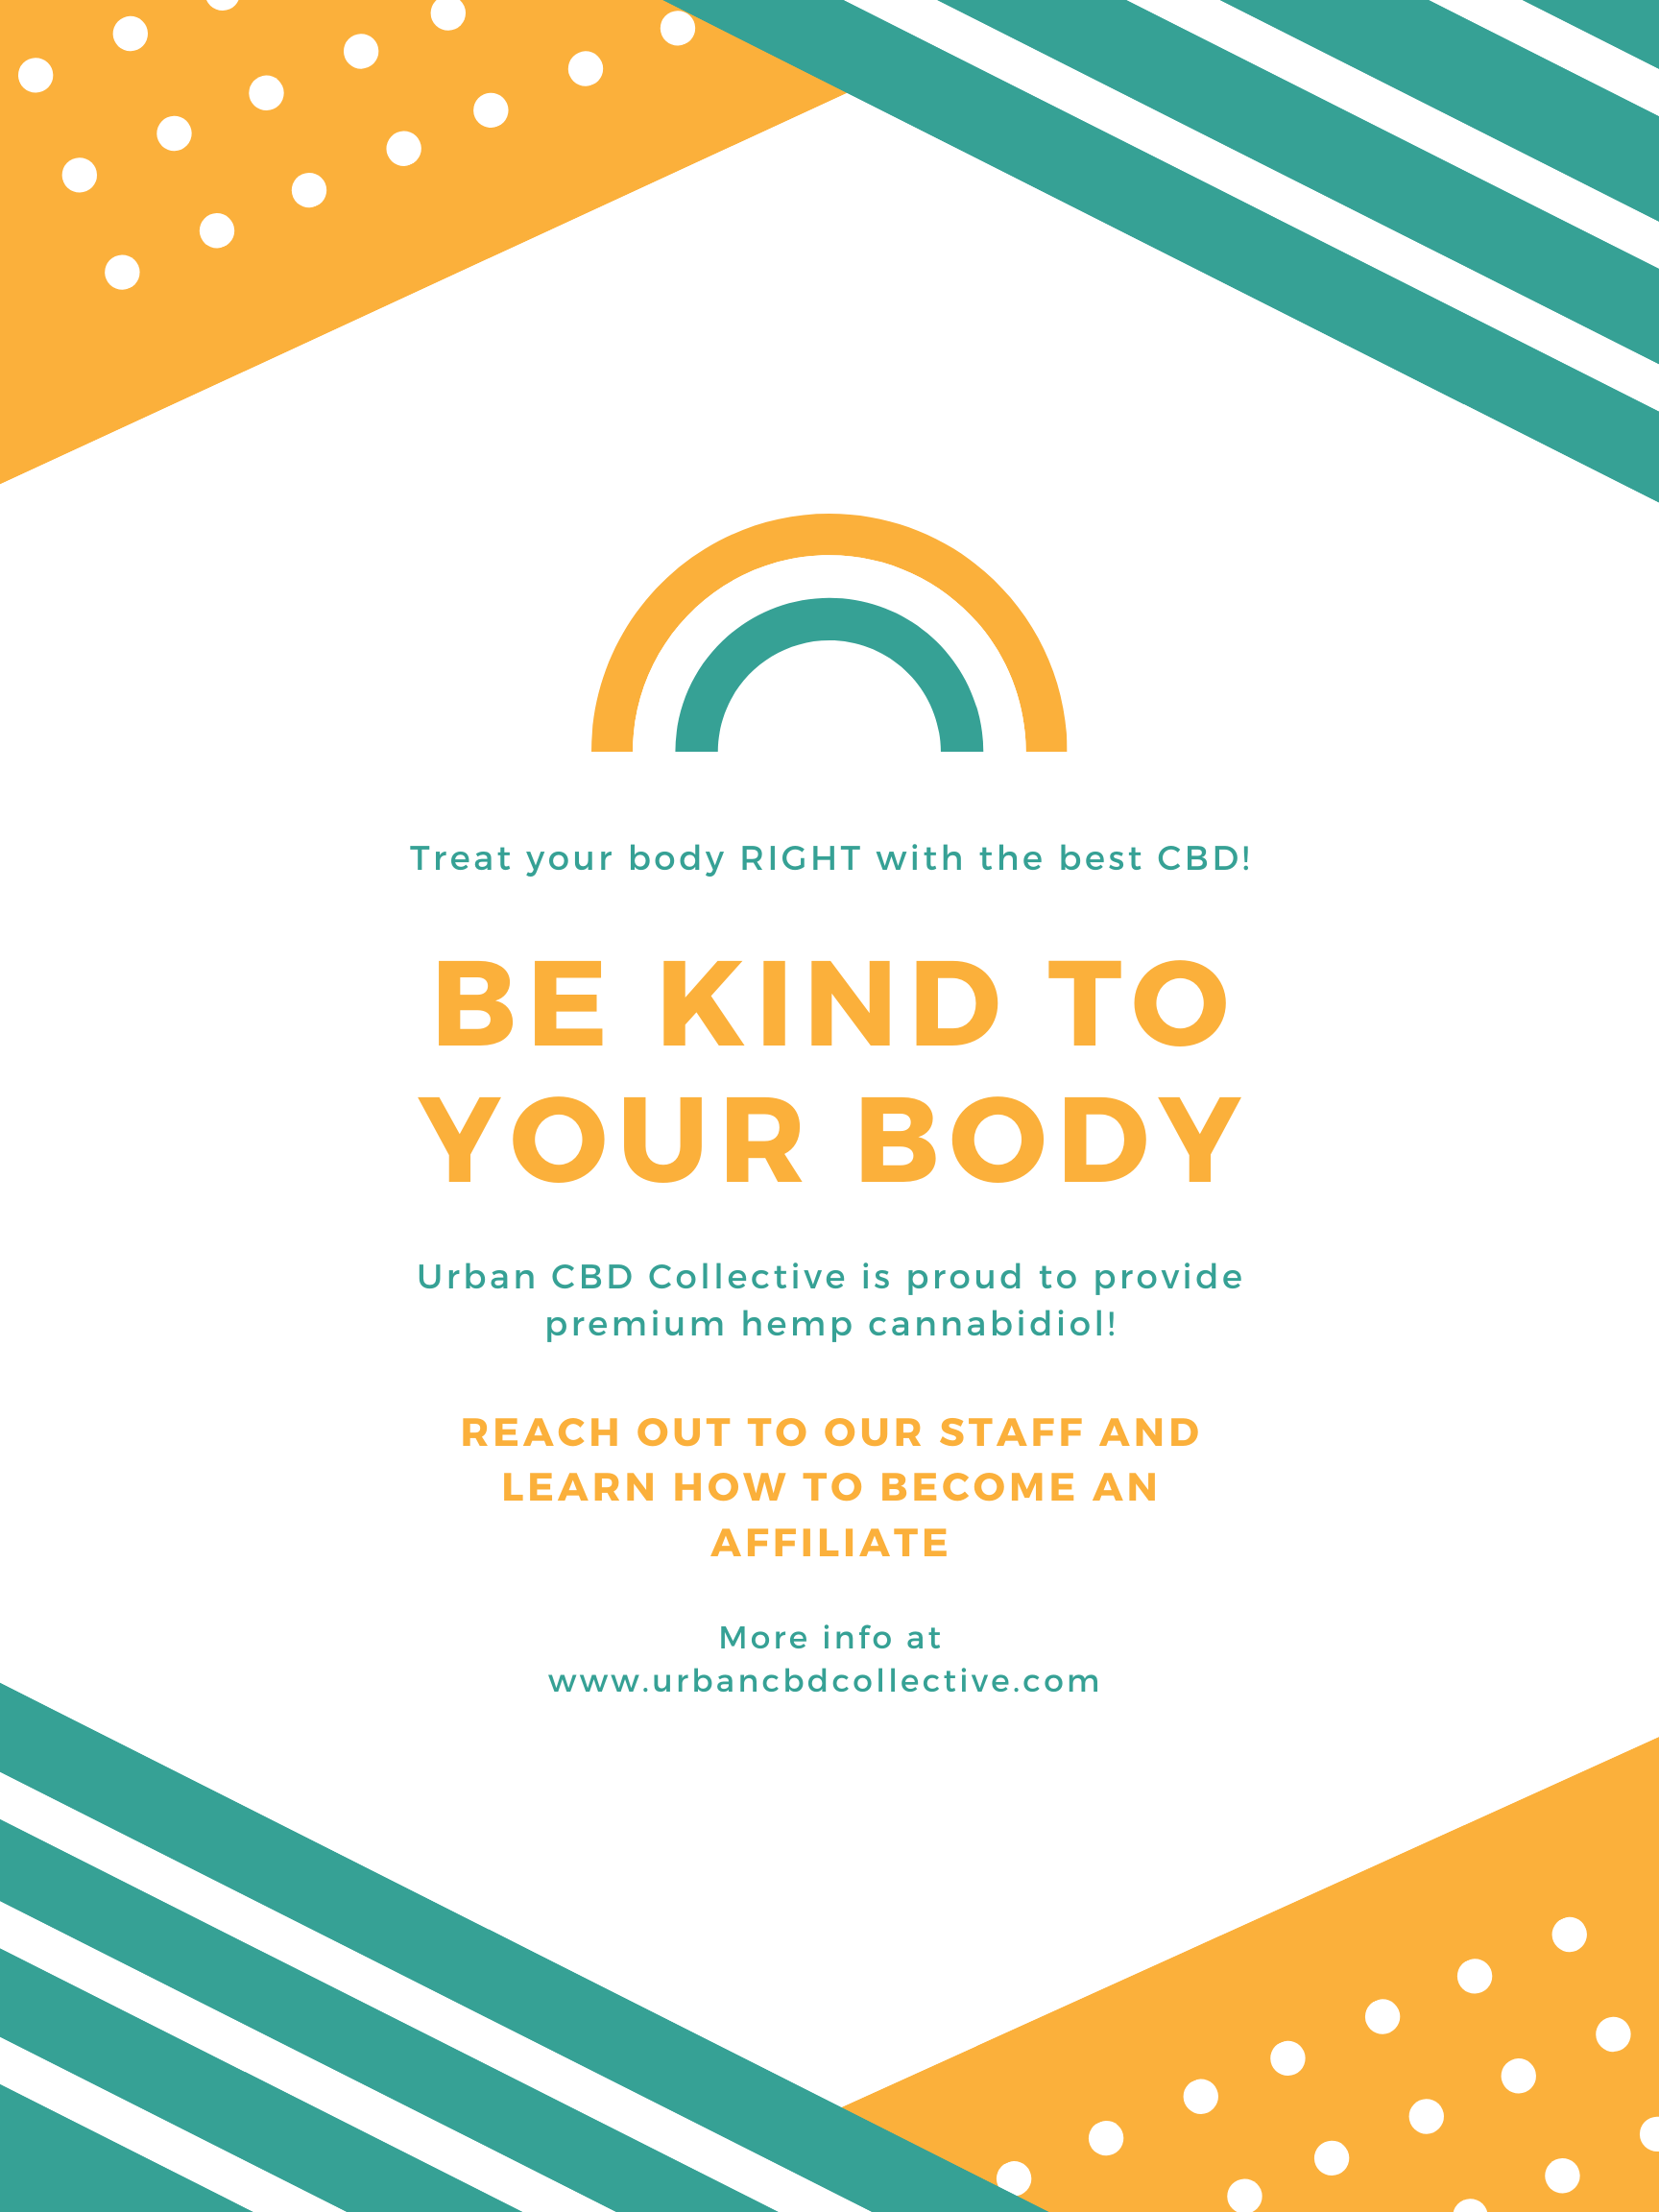 Be kind to your body with the best CBD Oil and Topical Products for sale from Urban CBD Collective